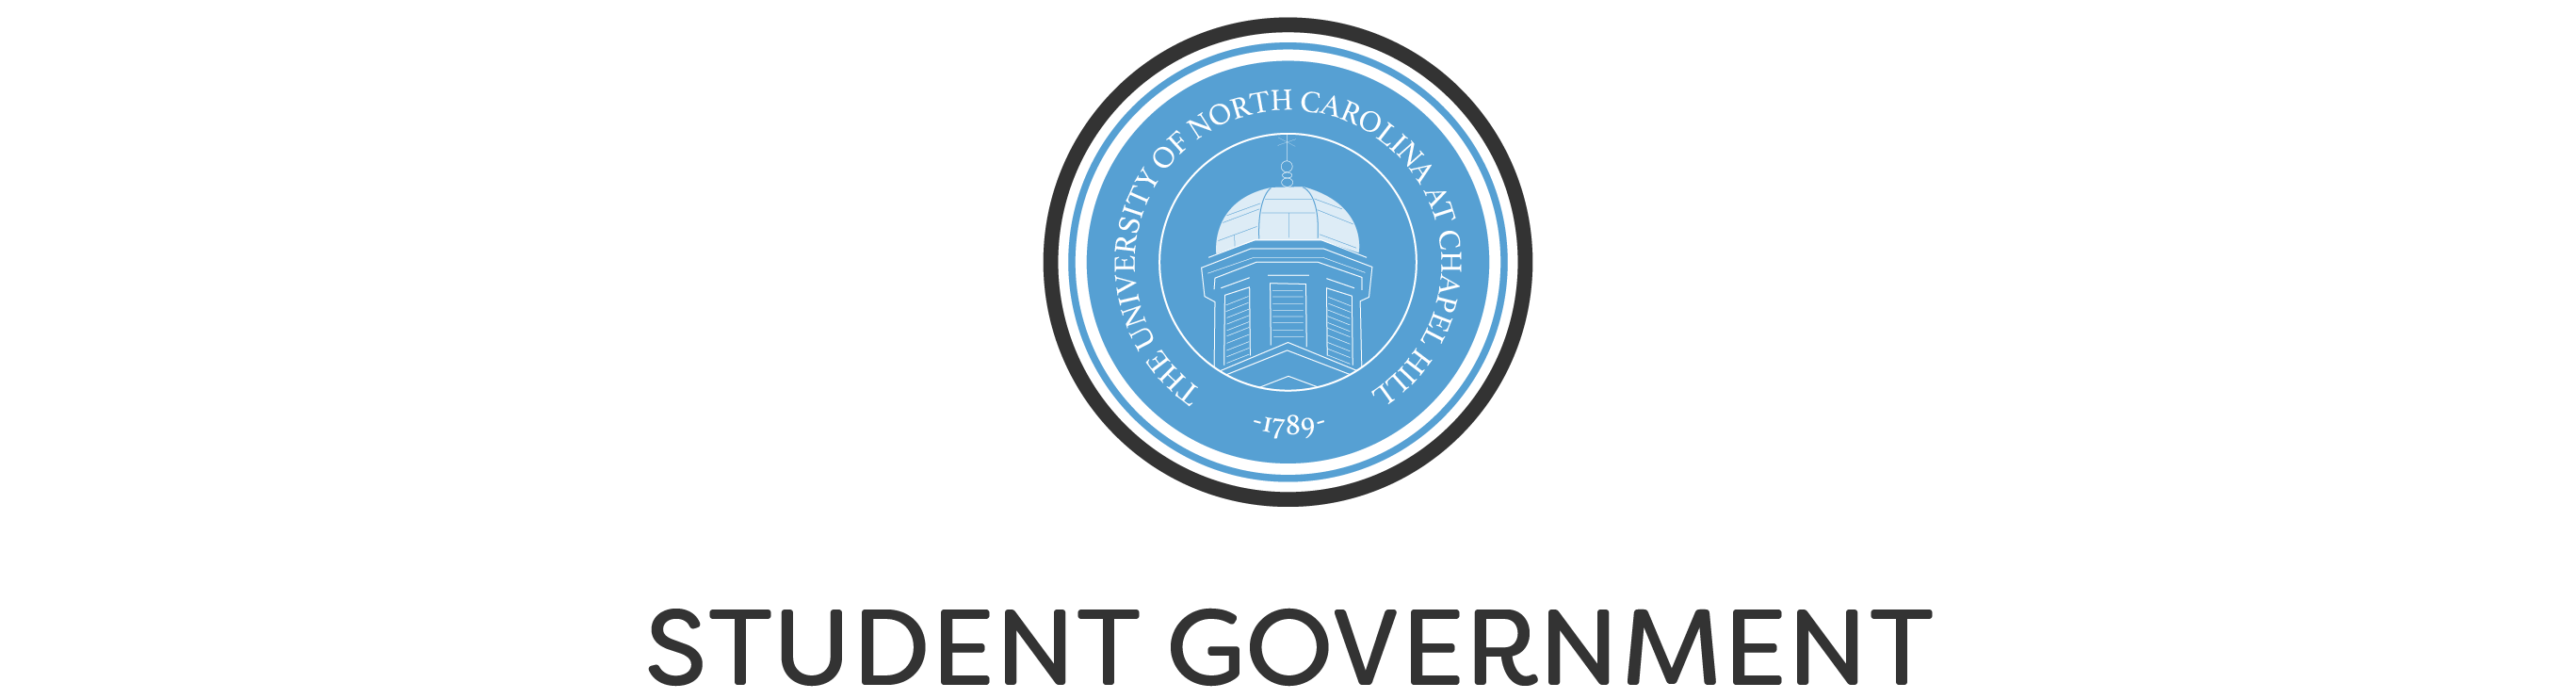 UNC Student Government